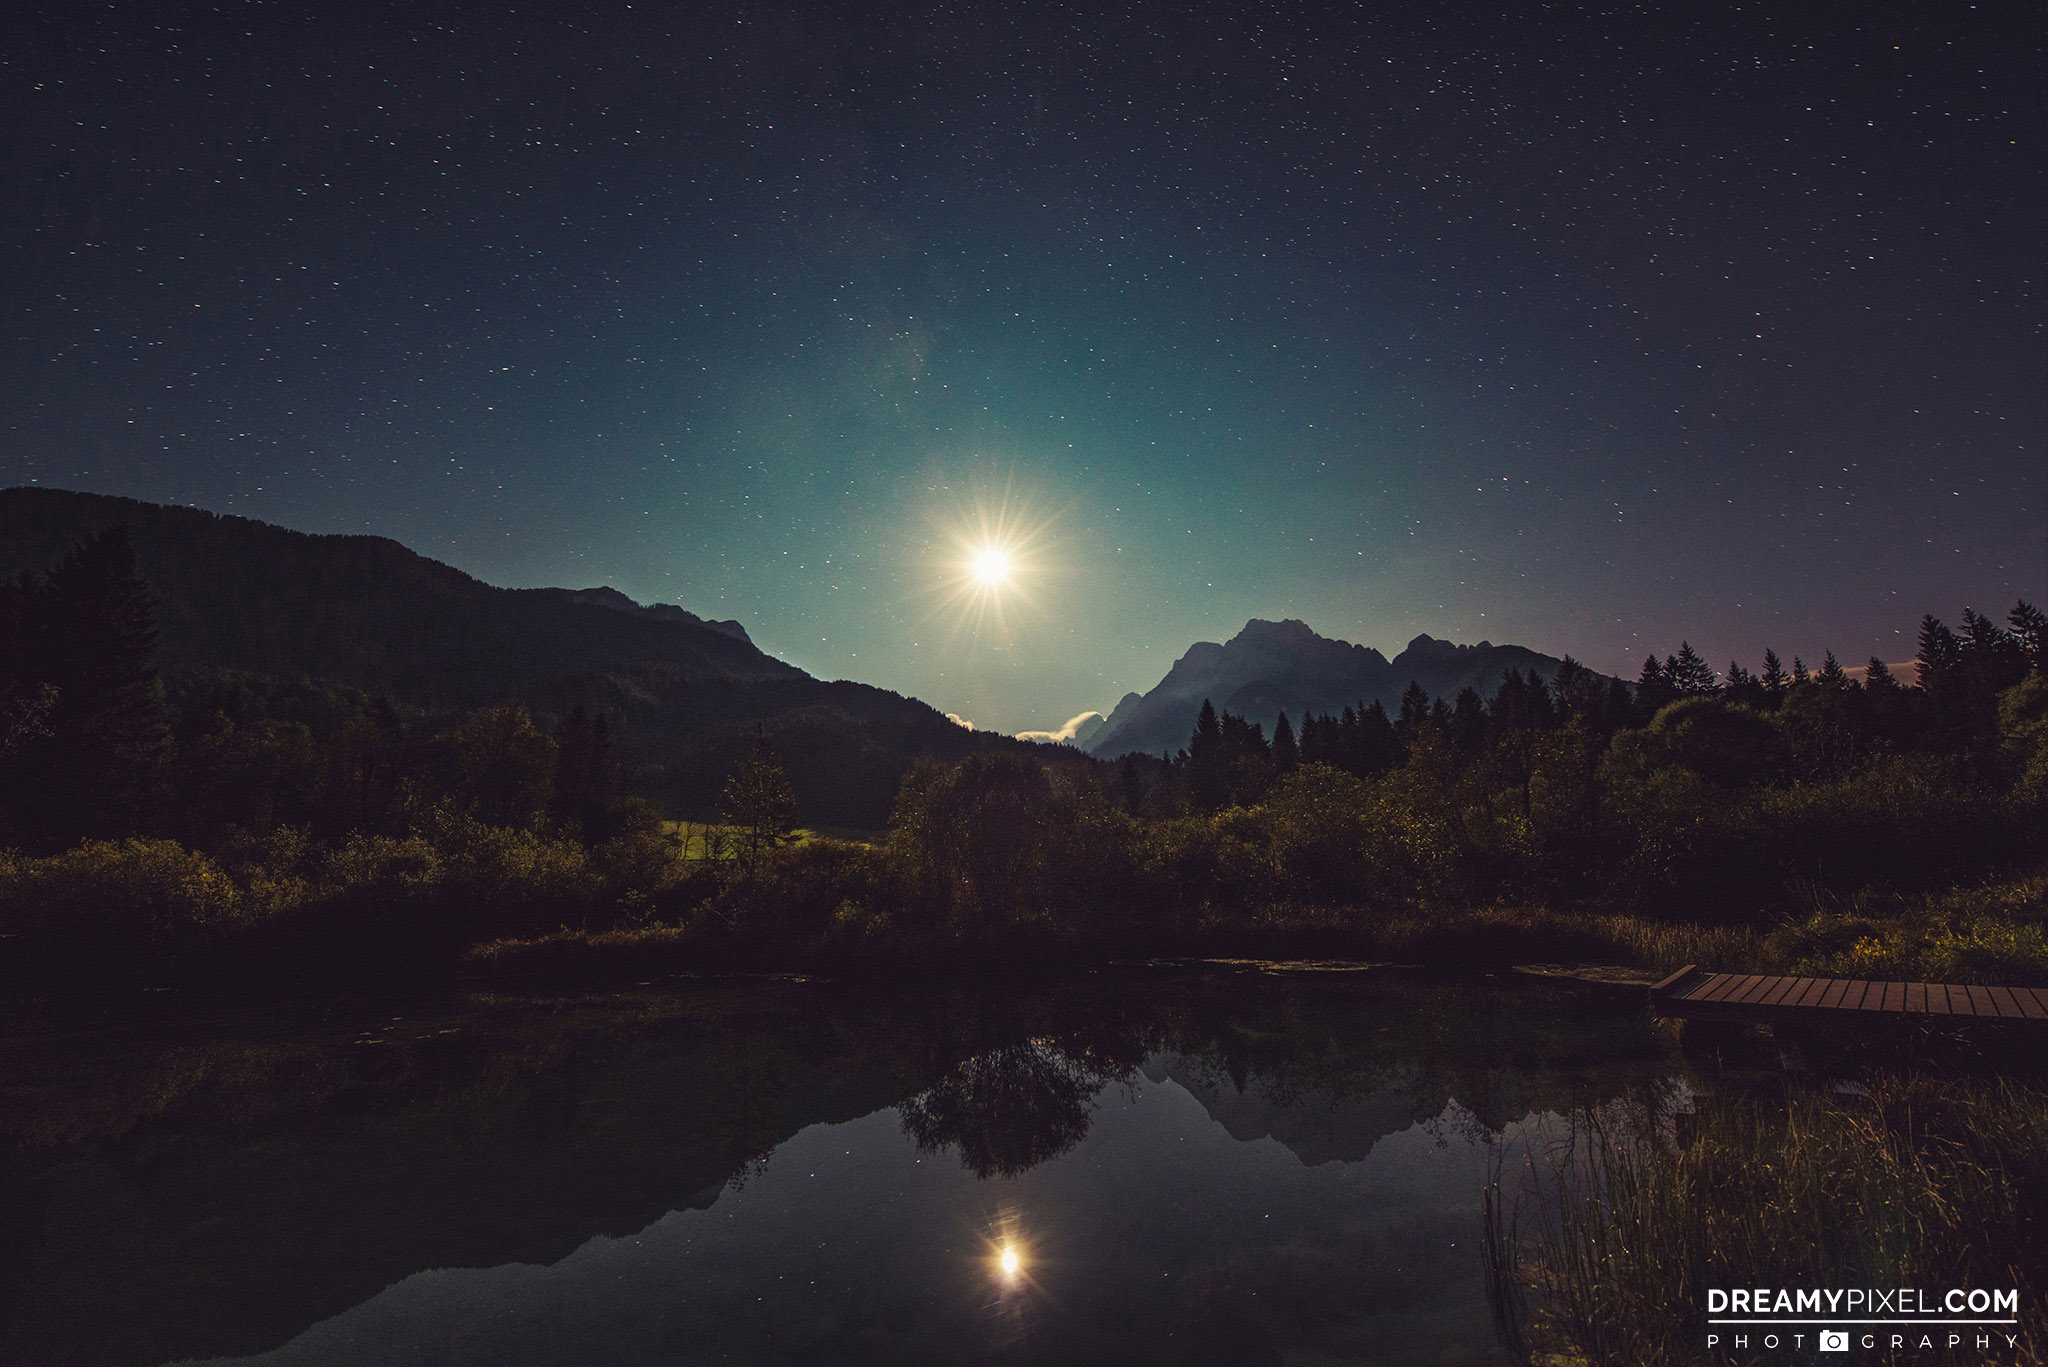 Zelenci springs at night